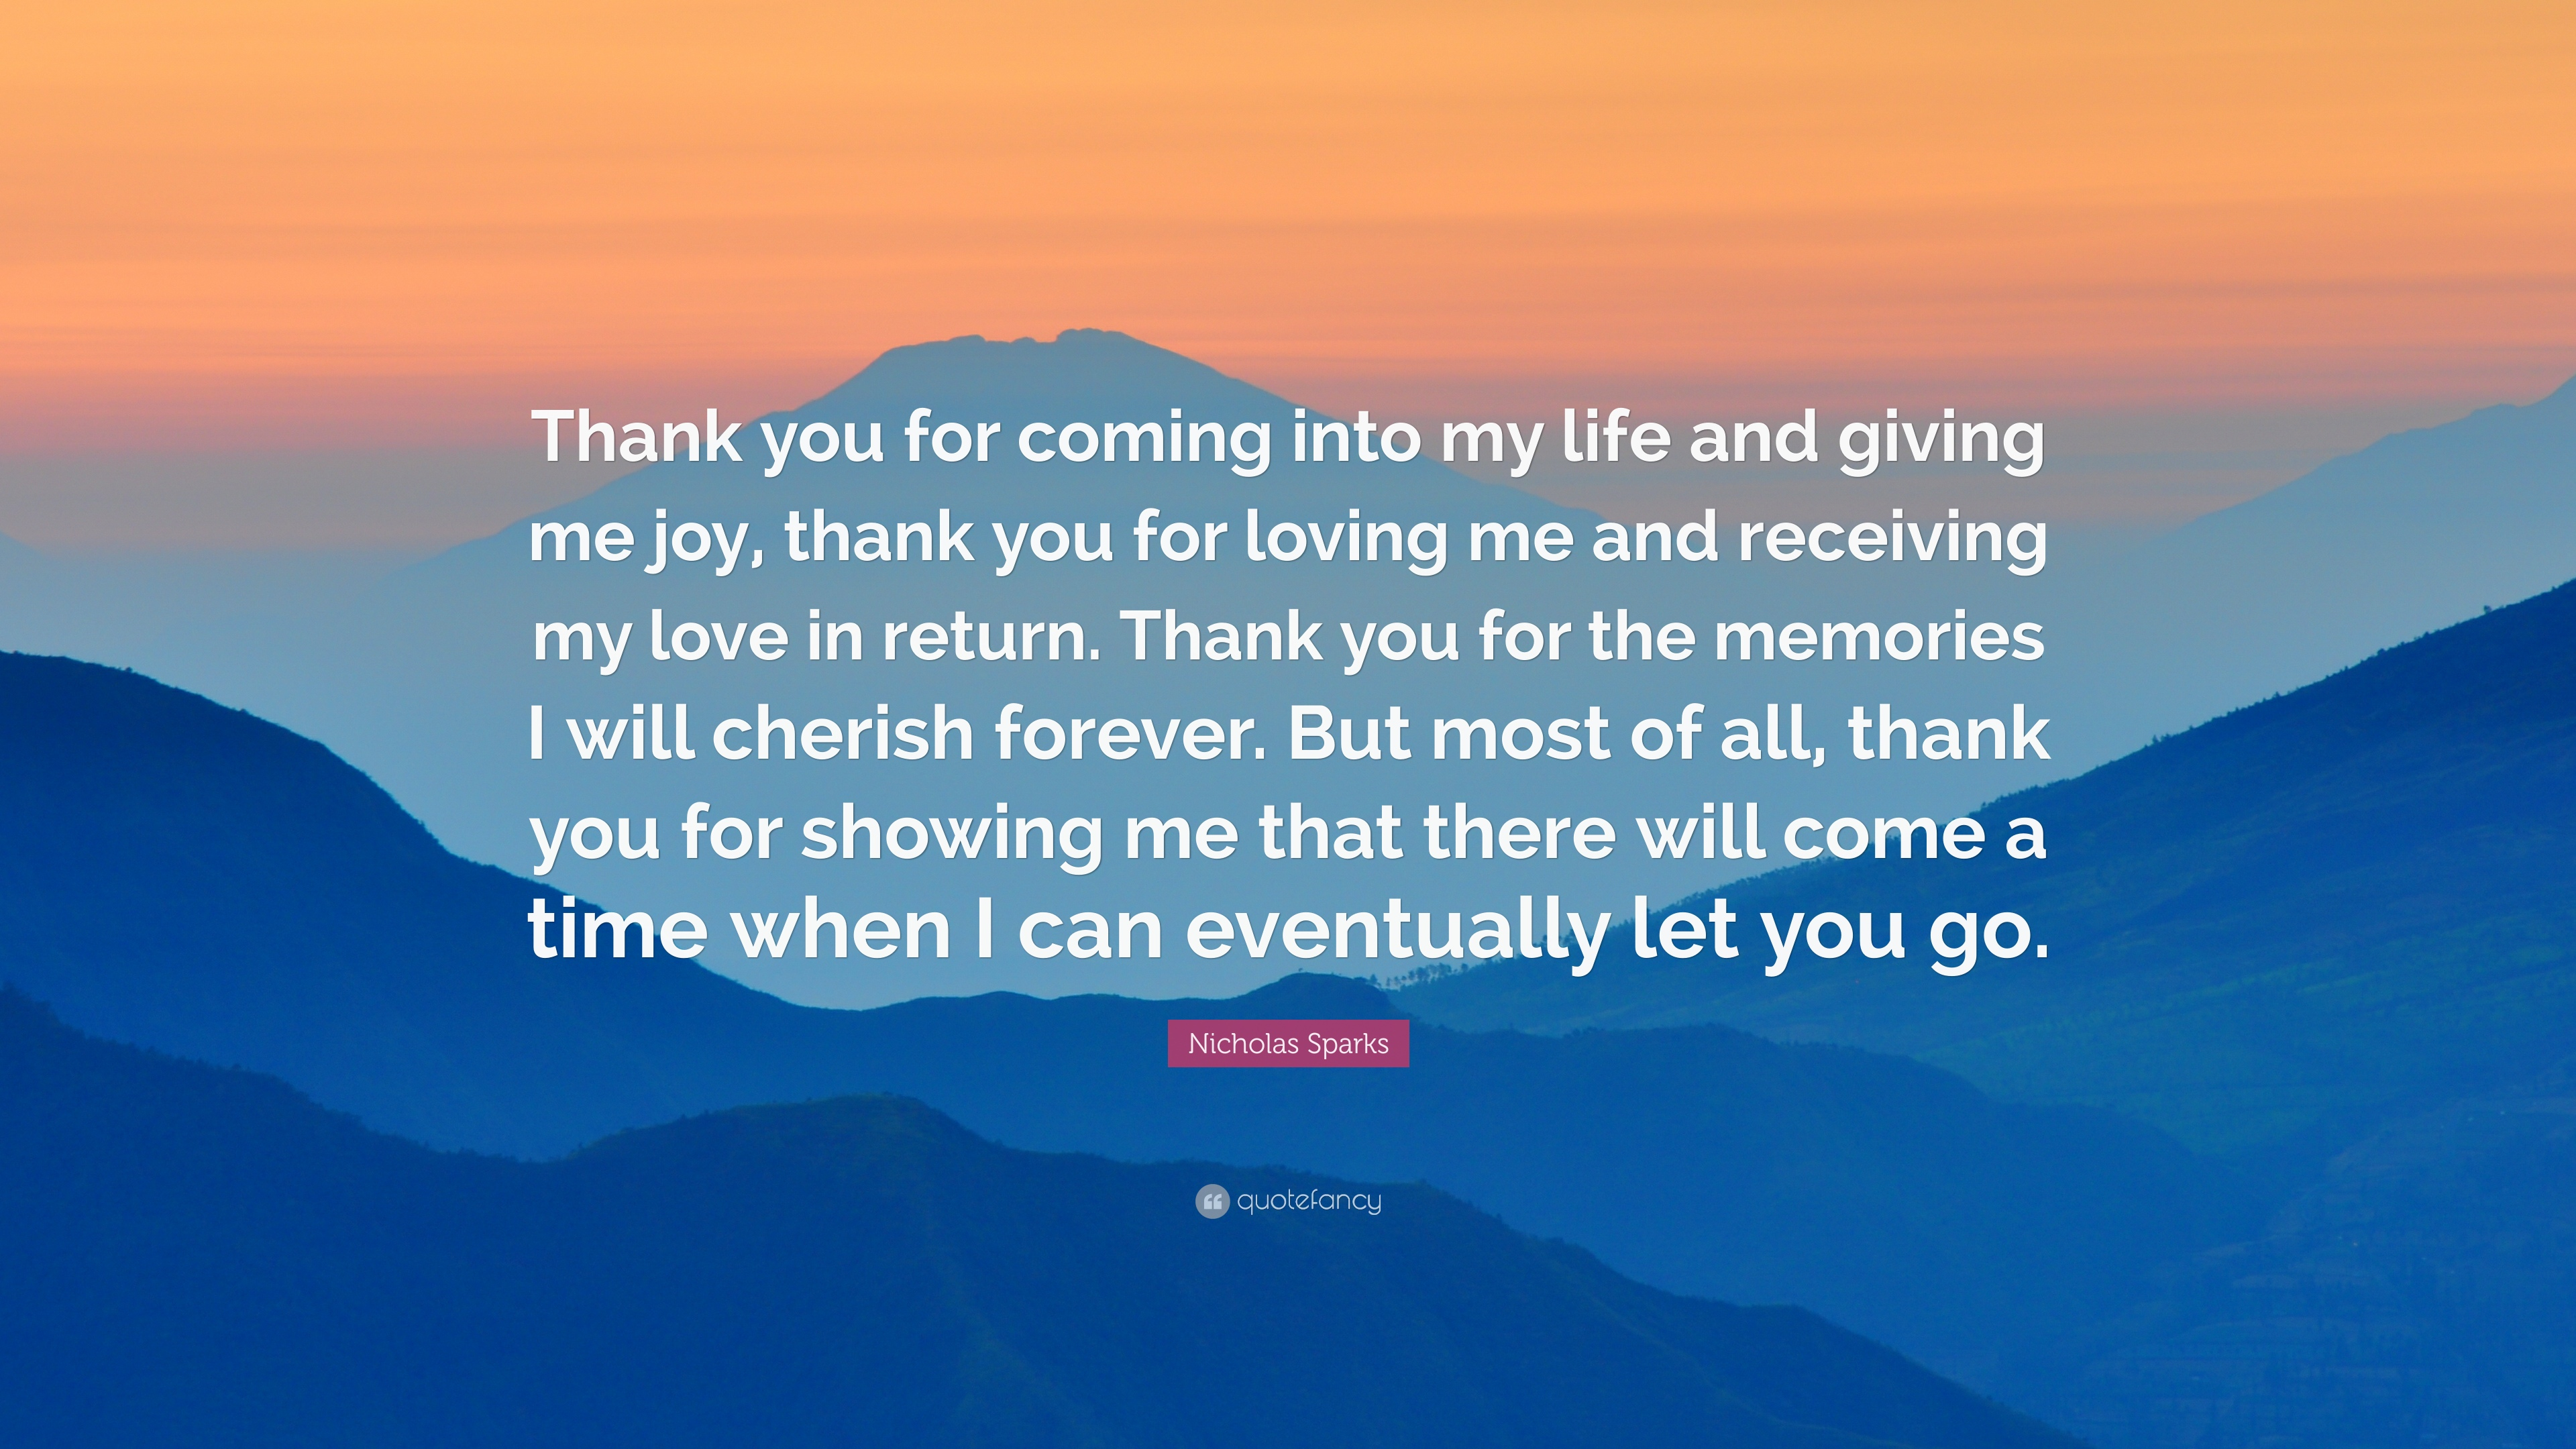 Nicholas Sparks Quote Thank You For Coming Into My Life And Giving